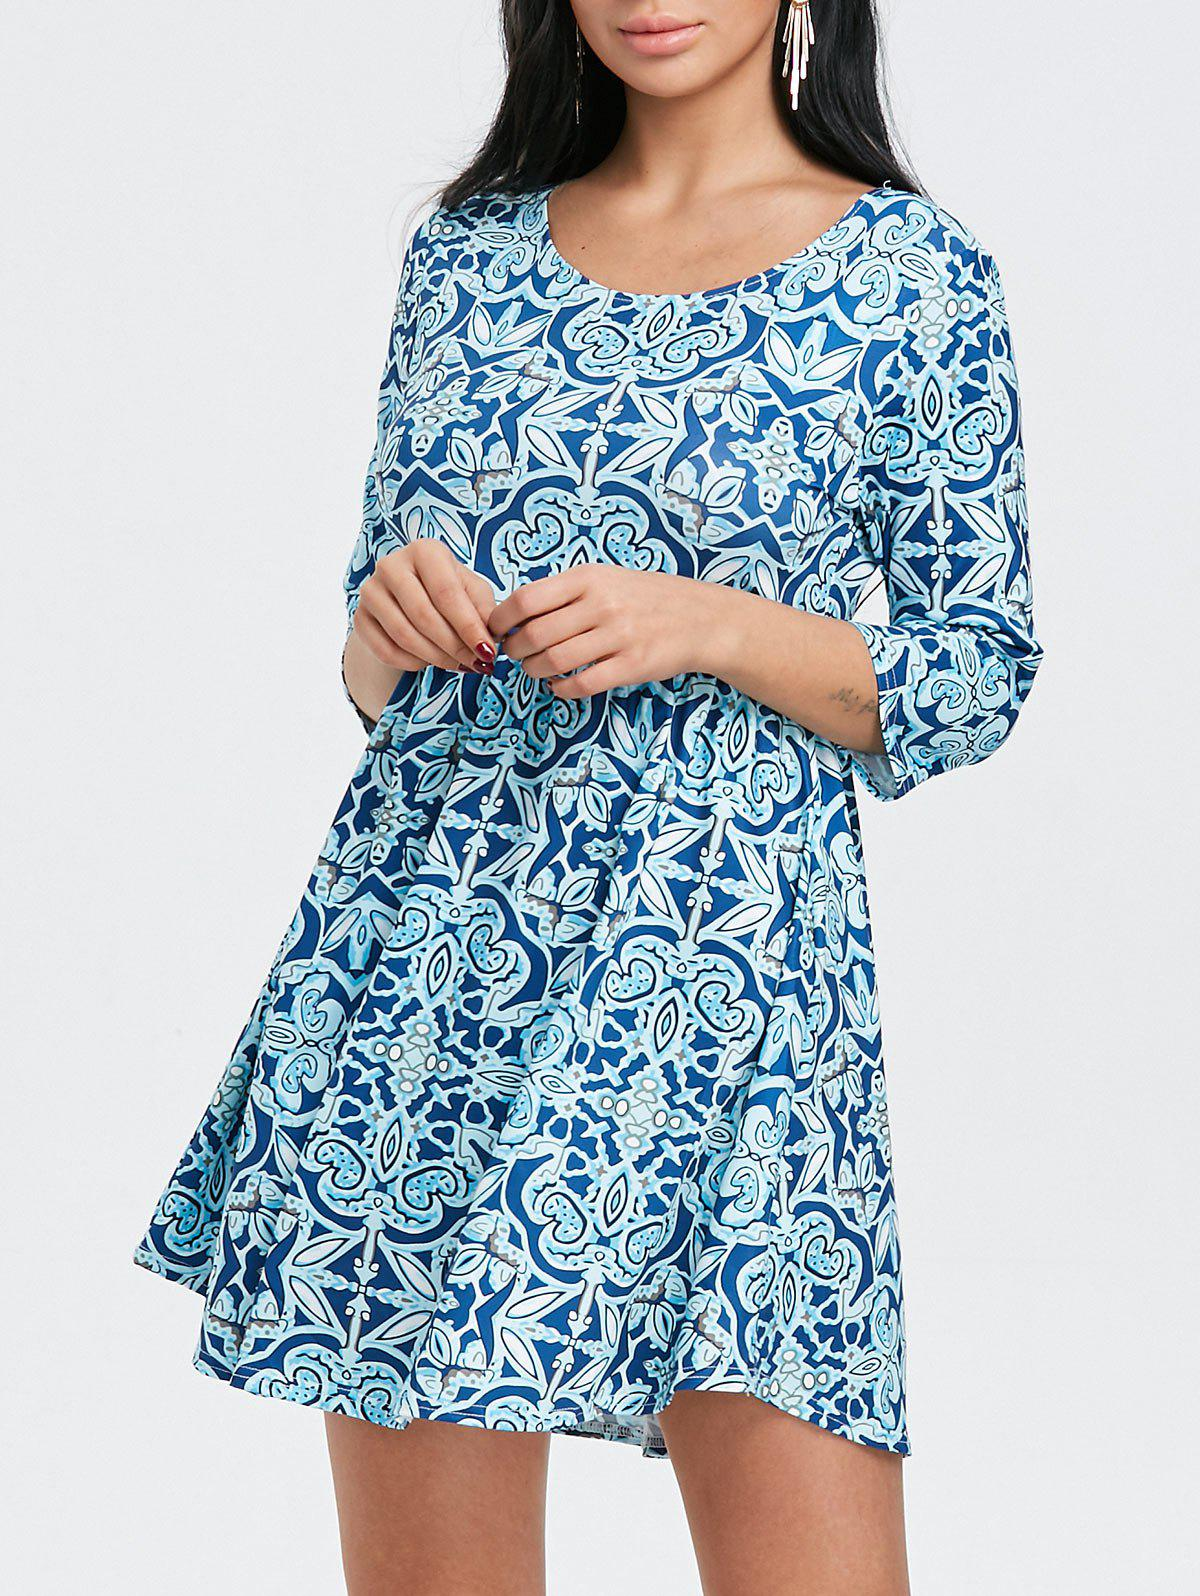 Scoop Neck Floral Print Mini Dress - BLUE 2XL